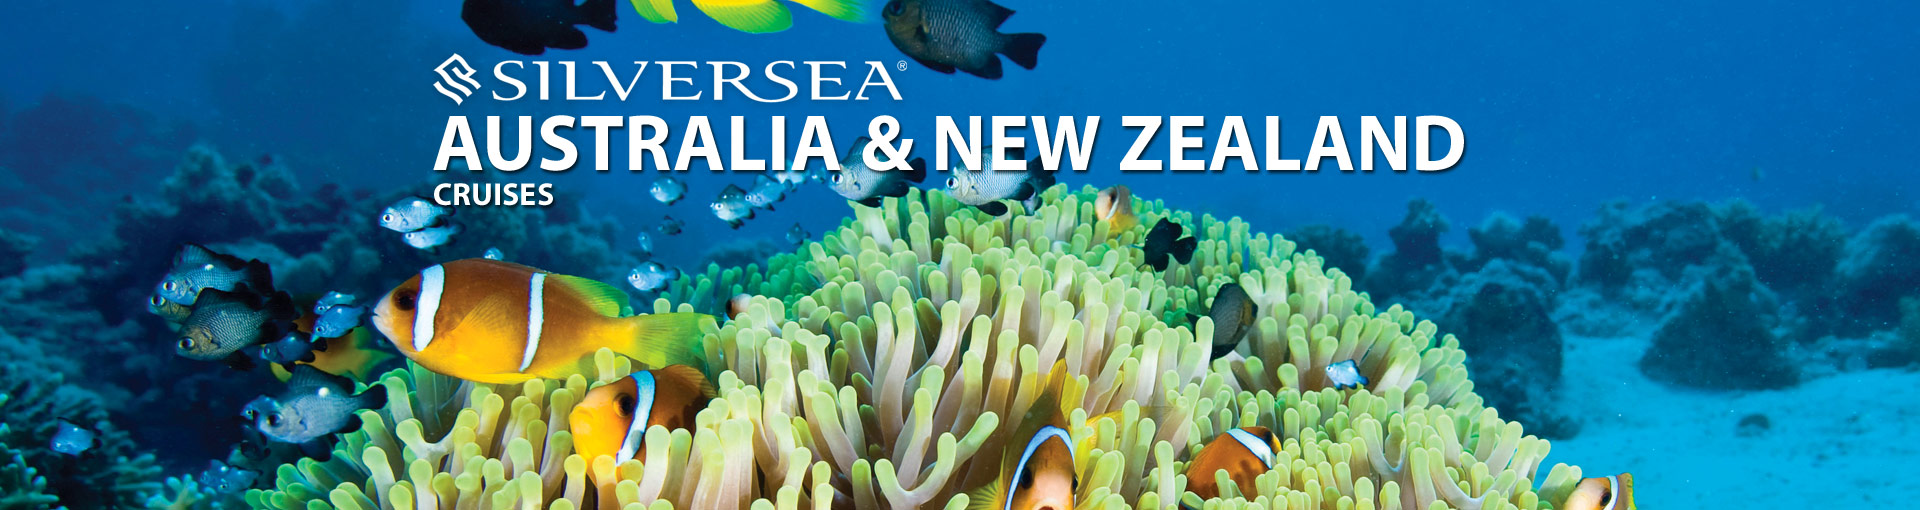 Silversea Cruises Australia/New Zealand Cruises